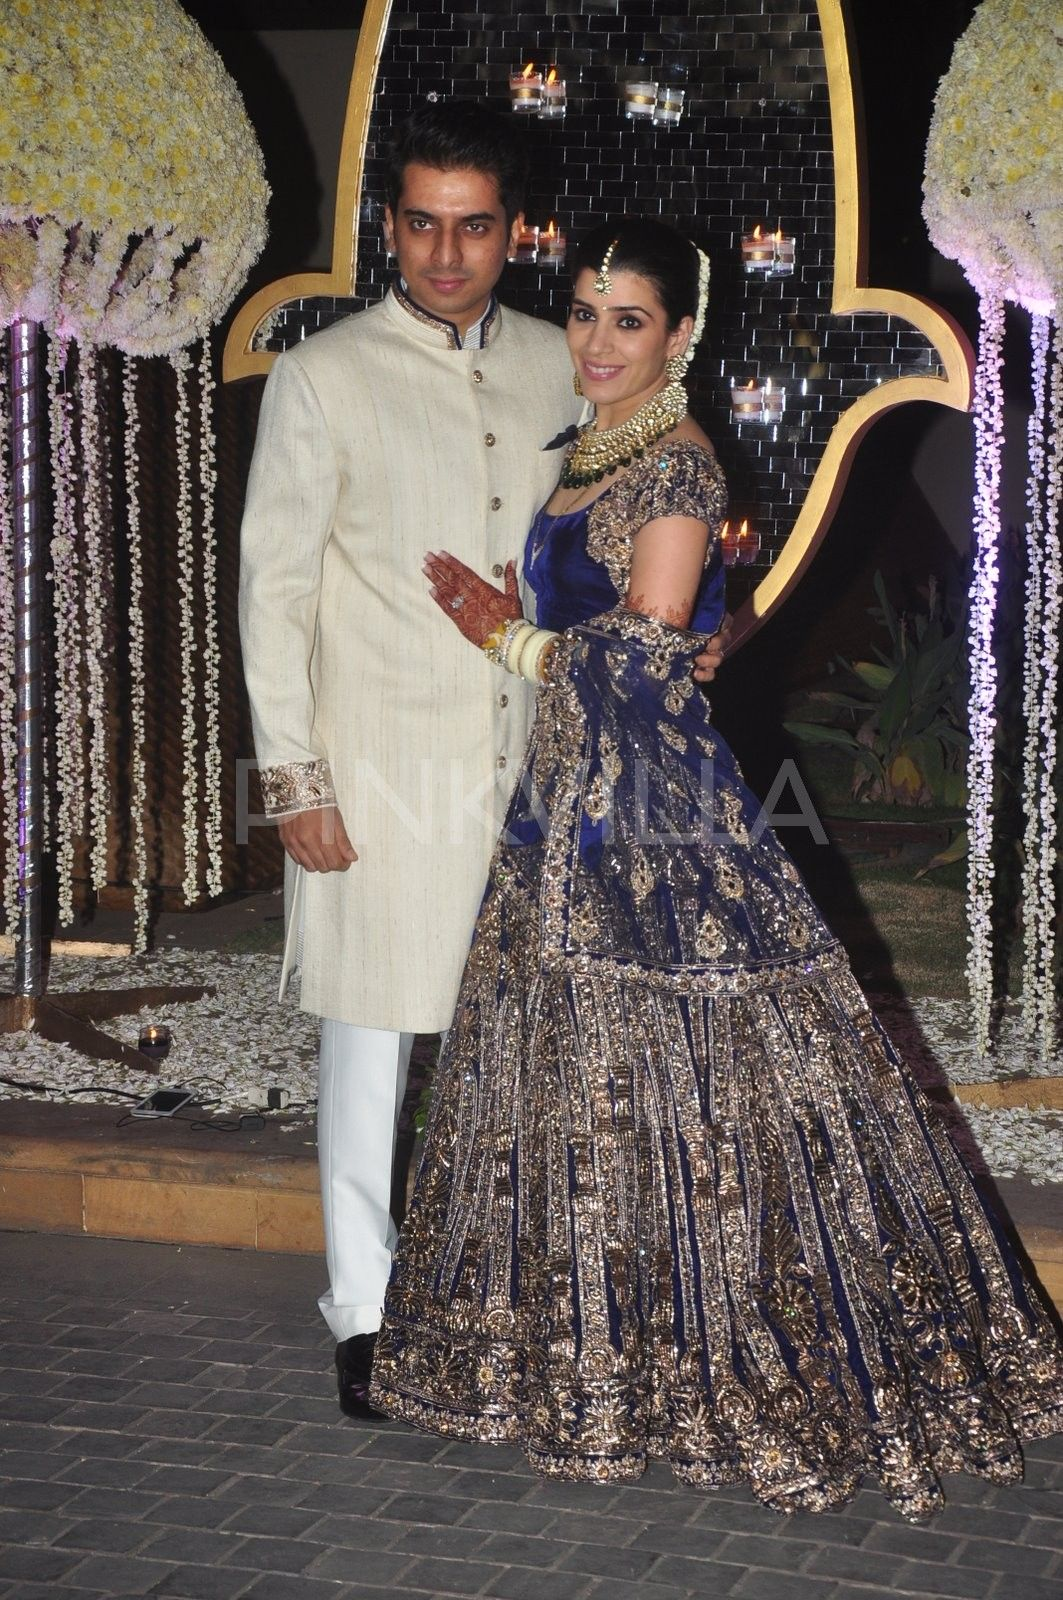 4922377a23971 Wedding reception of Talwalkar scion Tejas and Punit Malhotra's sister  Rriddhi Malhotra